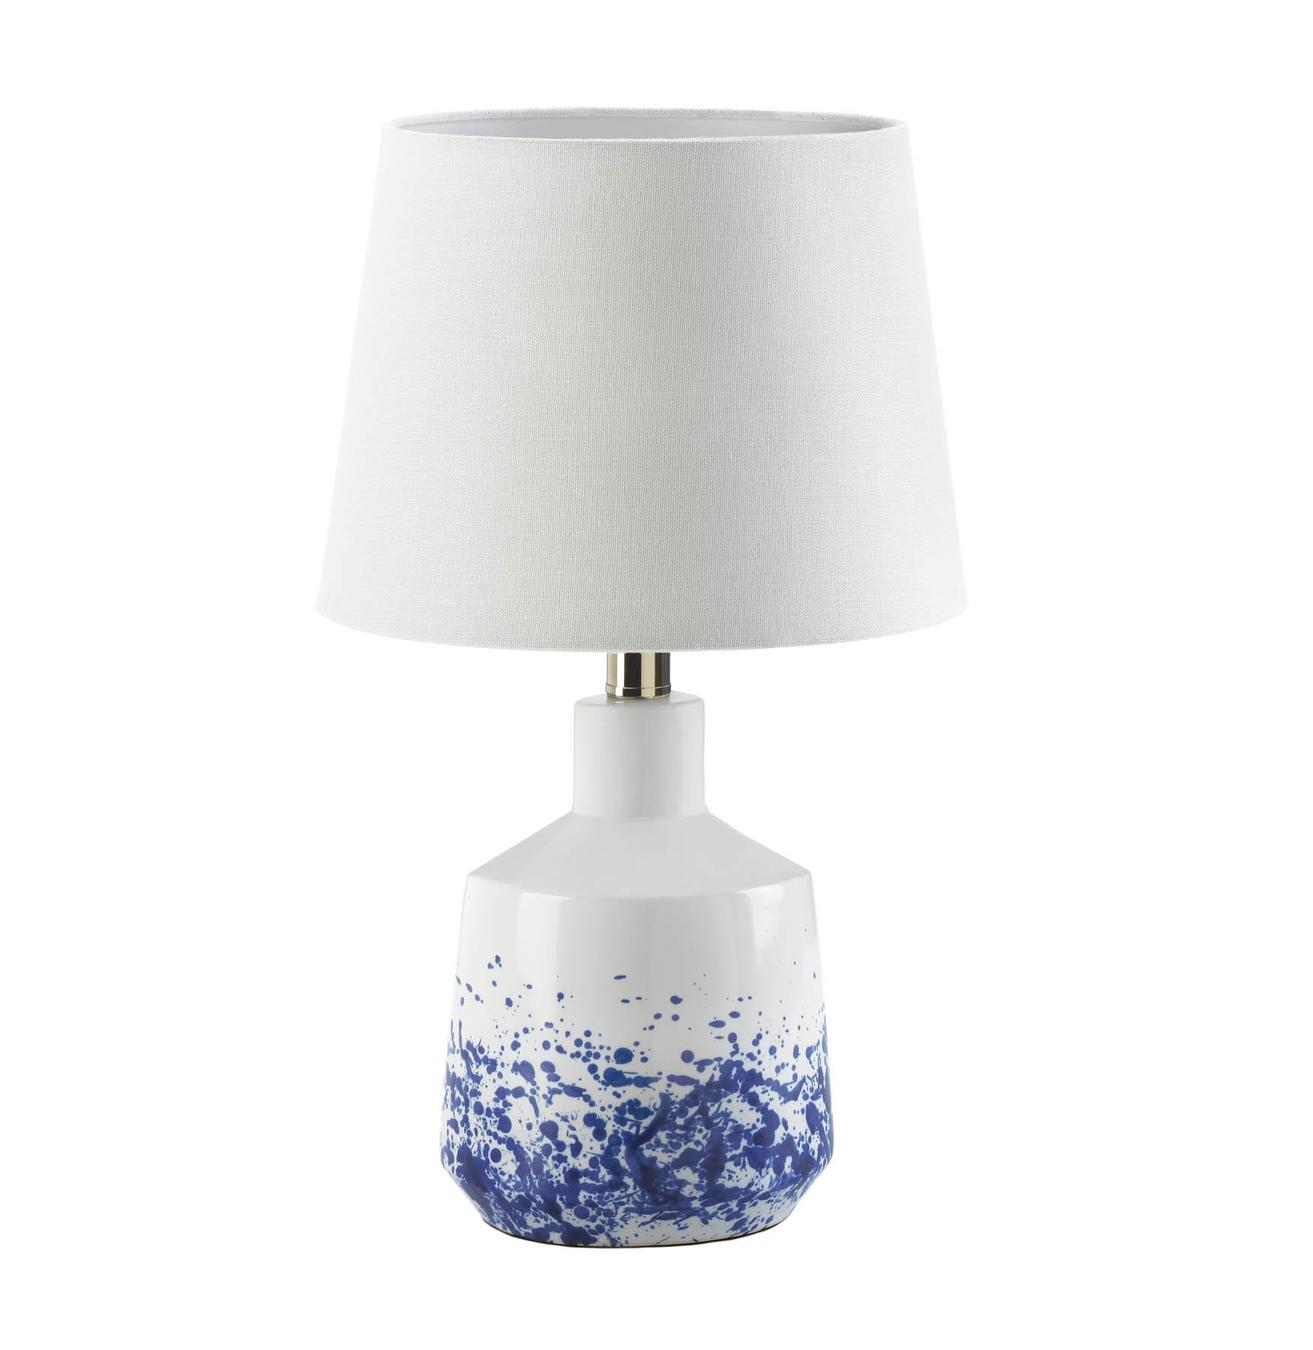 White & Blue Splash Table Lamp - Shop Lamp - DARRA HOME